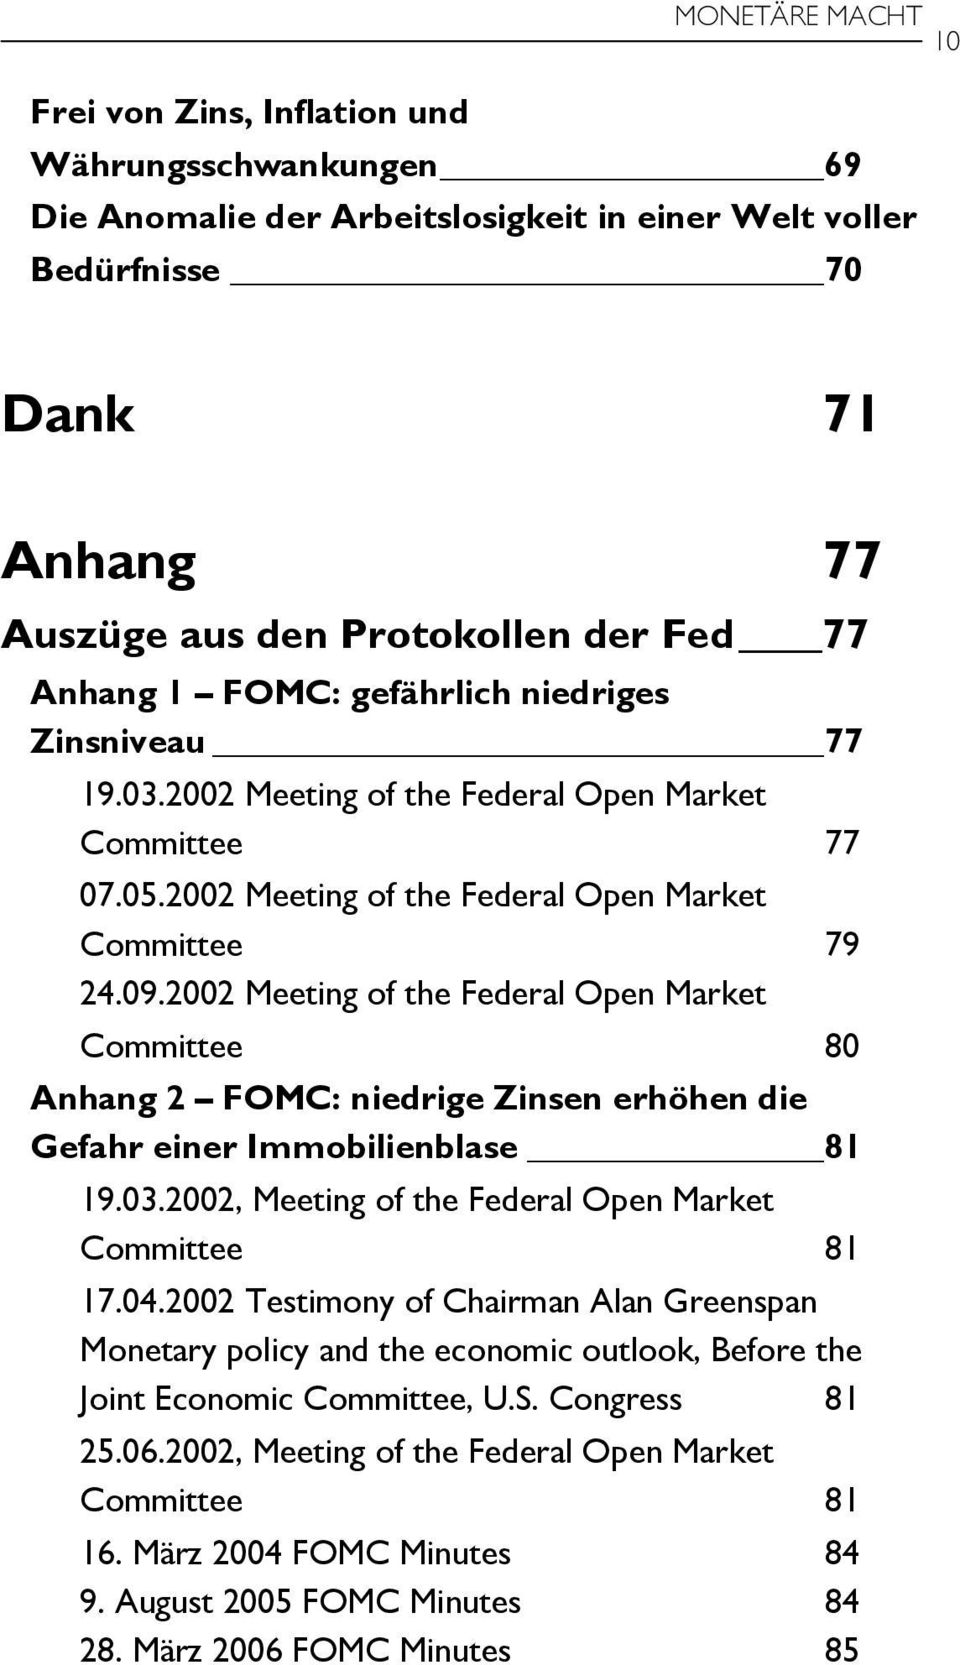 2002 Meeting of the Federal Open Market Committee 80 Anhang 2 FOMC: niedrige Zinsen erhöhen die Gefahr einer Immobilienblase 81 19.03.2002, Meeting of the Federal Open Market Committee 81 17.04.